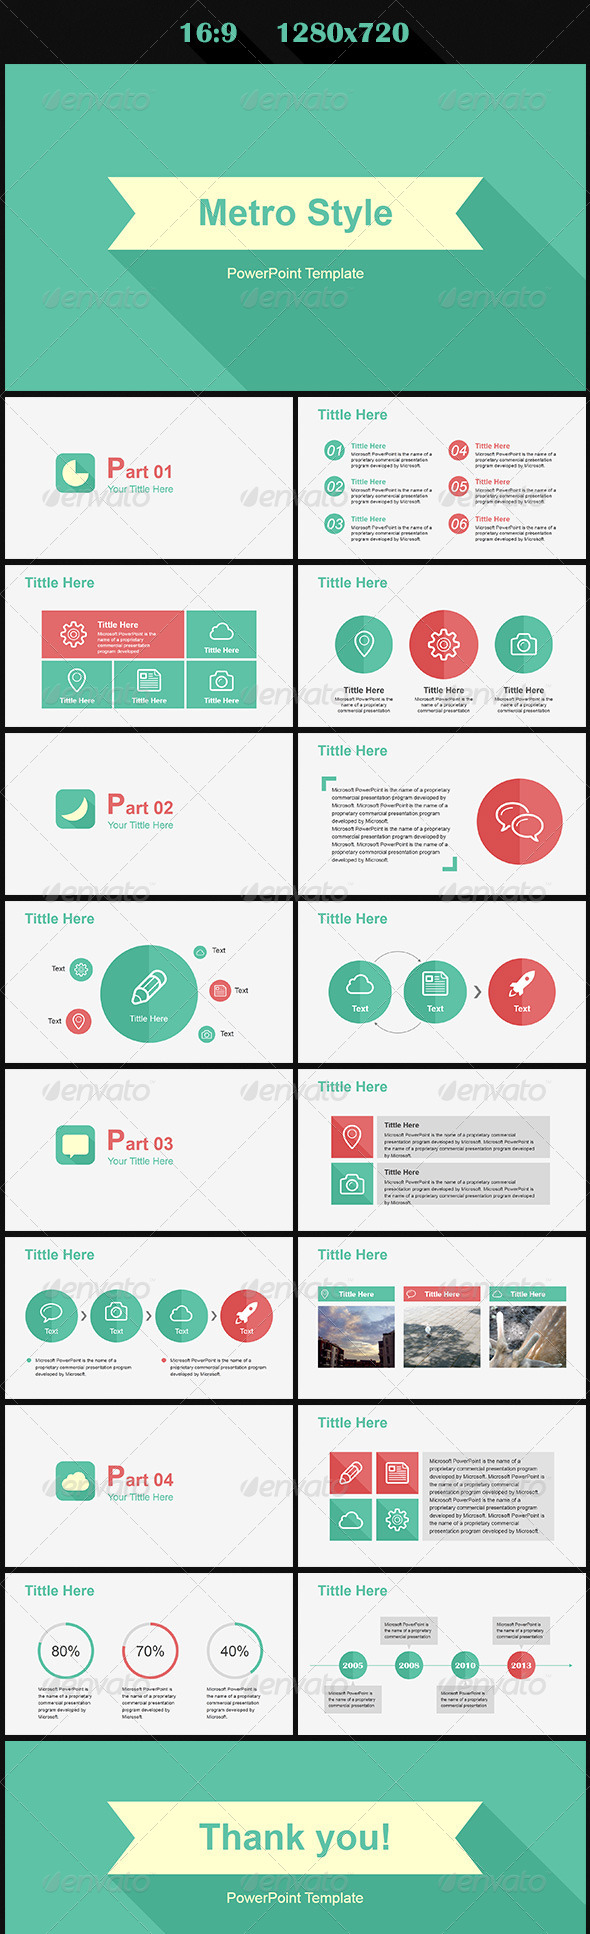 Metro style font arial metro style and change colour metro style graphicriver its a modern and fashion powerpoint template with metro style all toneelgroepblik Images